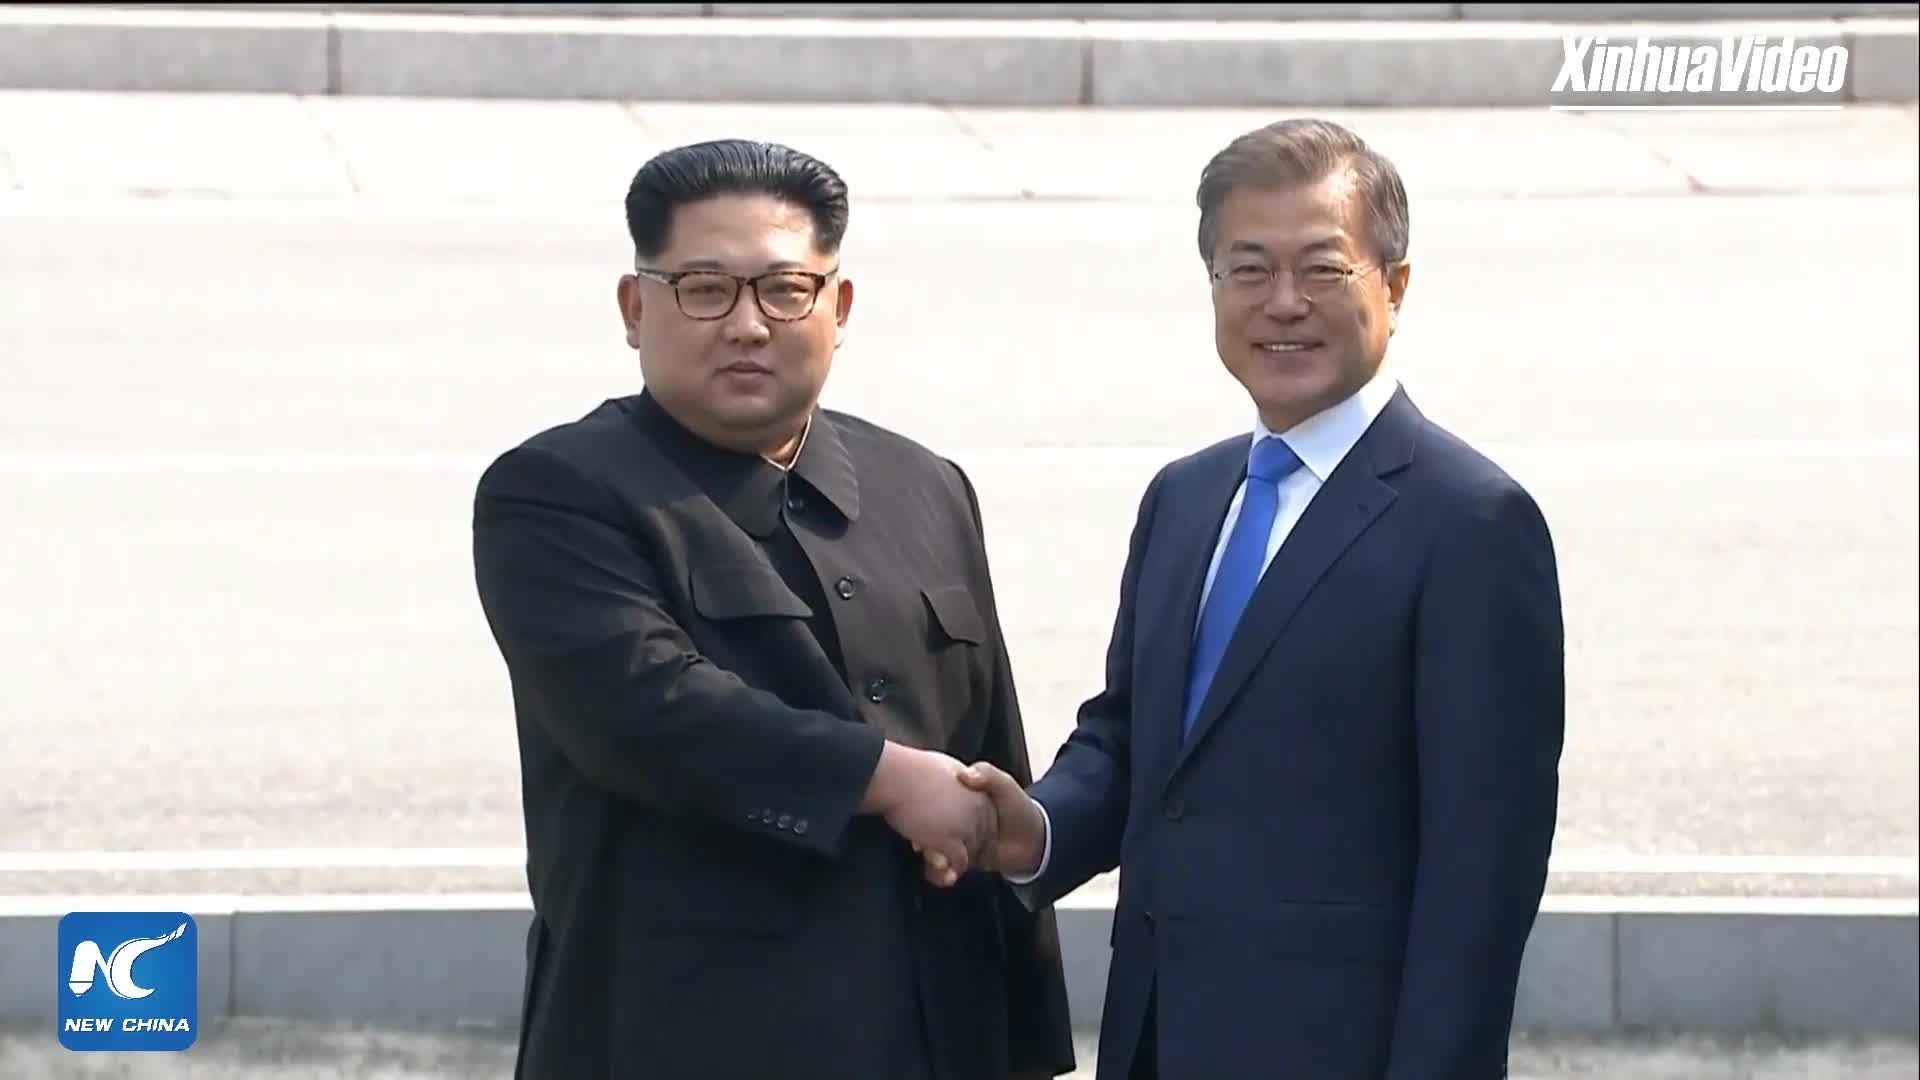 the history and main features of north korea North korea is located in east asia on the northern half of the korean peninsula north korea shares a border with three countries china along the amnok river, russia along the tumen river, and south korea along the korean demilitarized zone (dmz.